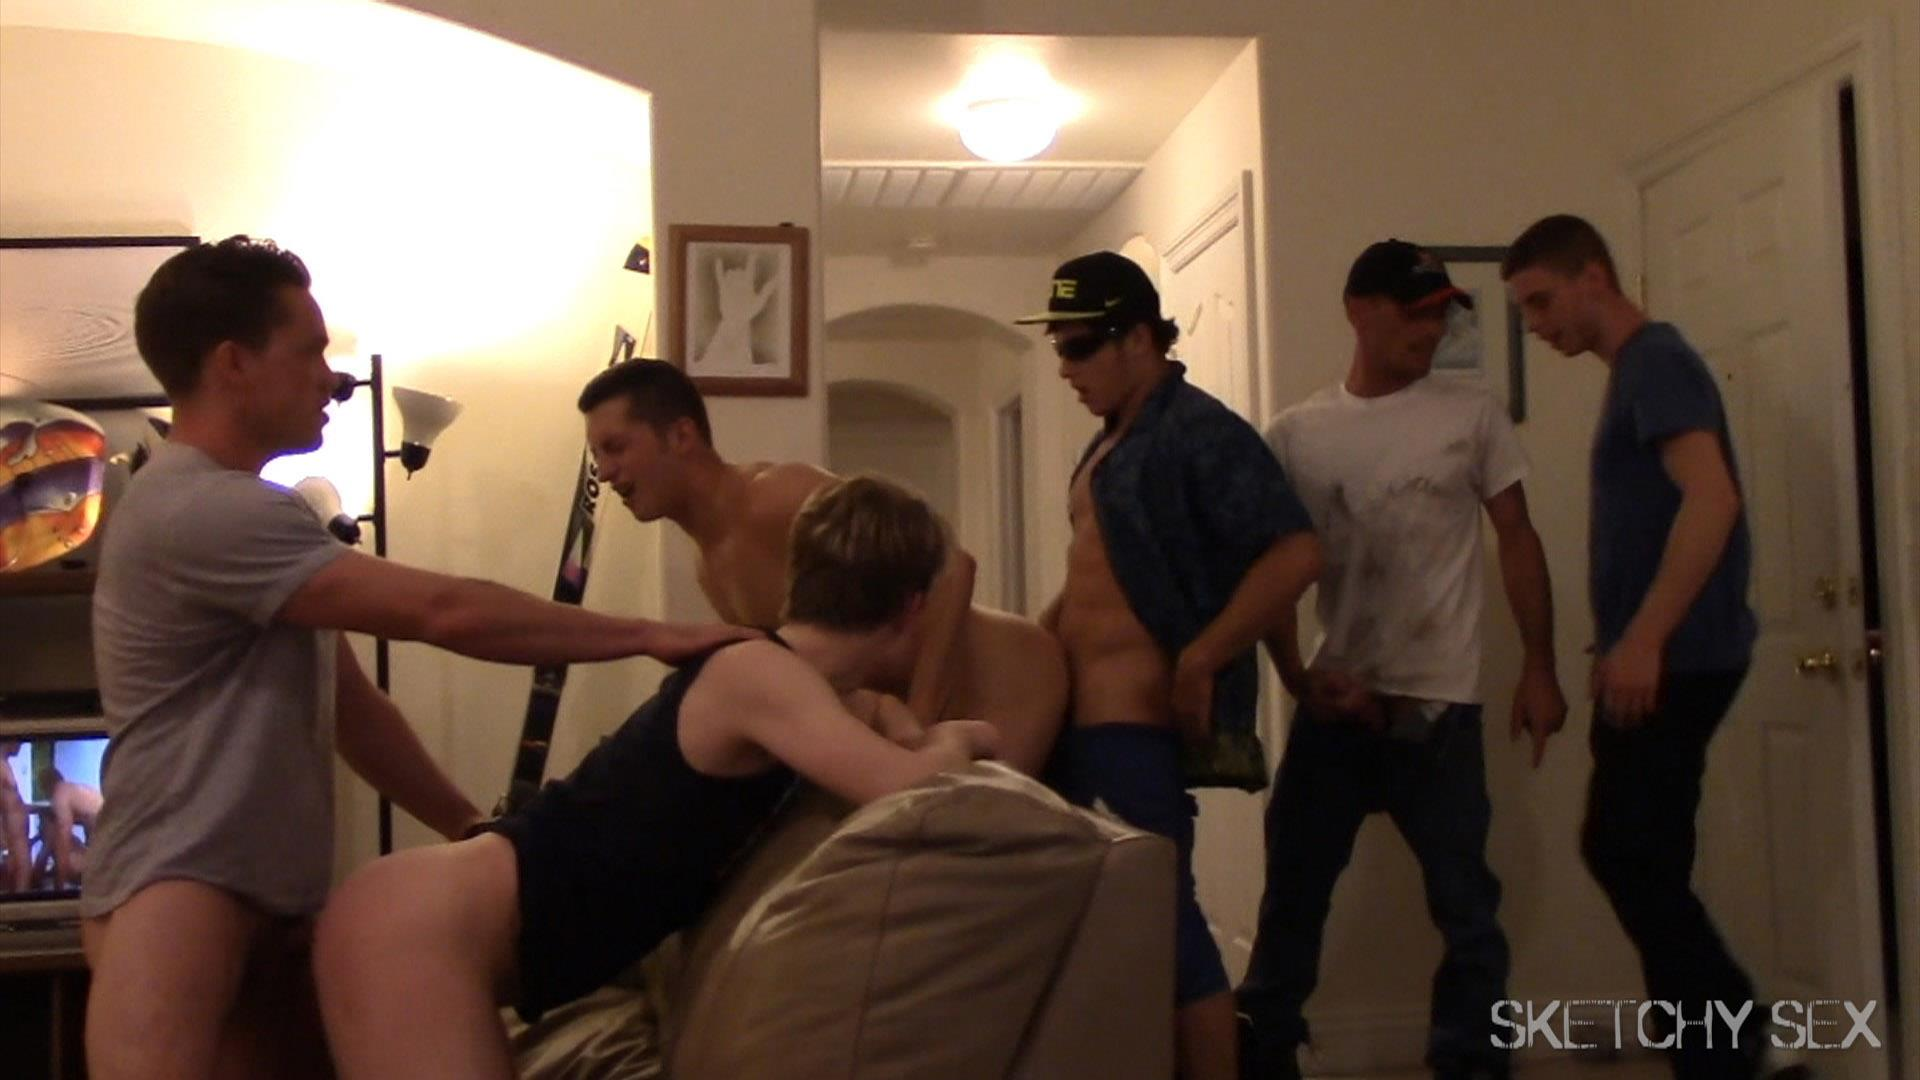 Sketchy-Sex-Anonymous-Bareback-Sex-Party-Amateur-Gay-Porn-03.jpg